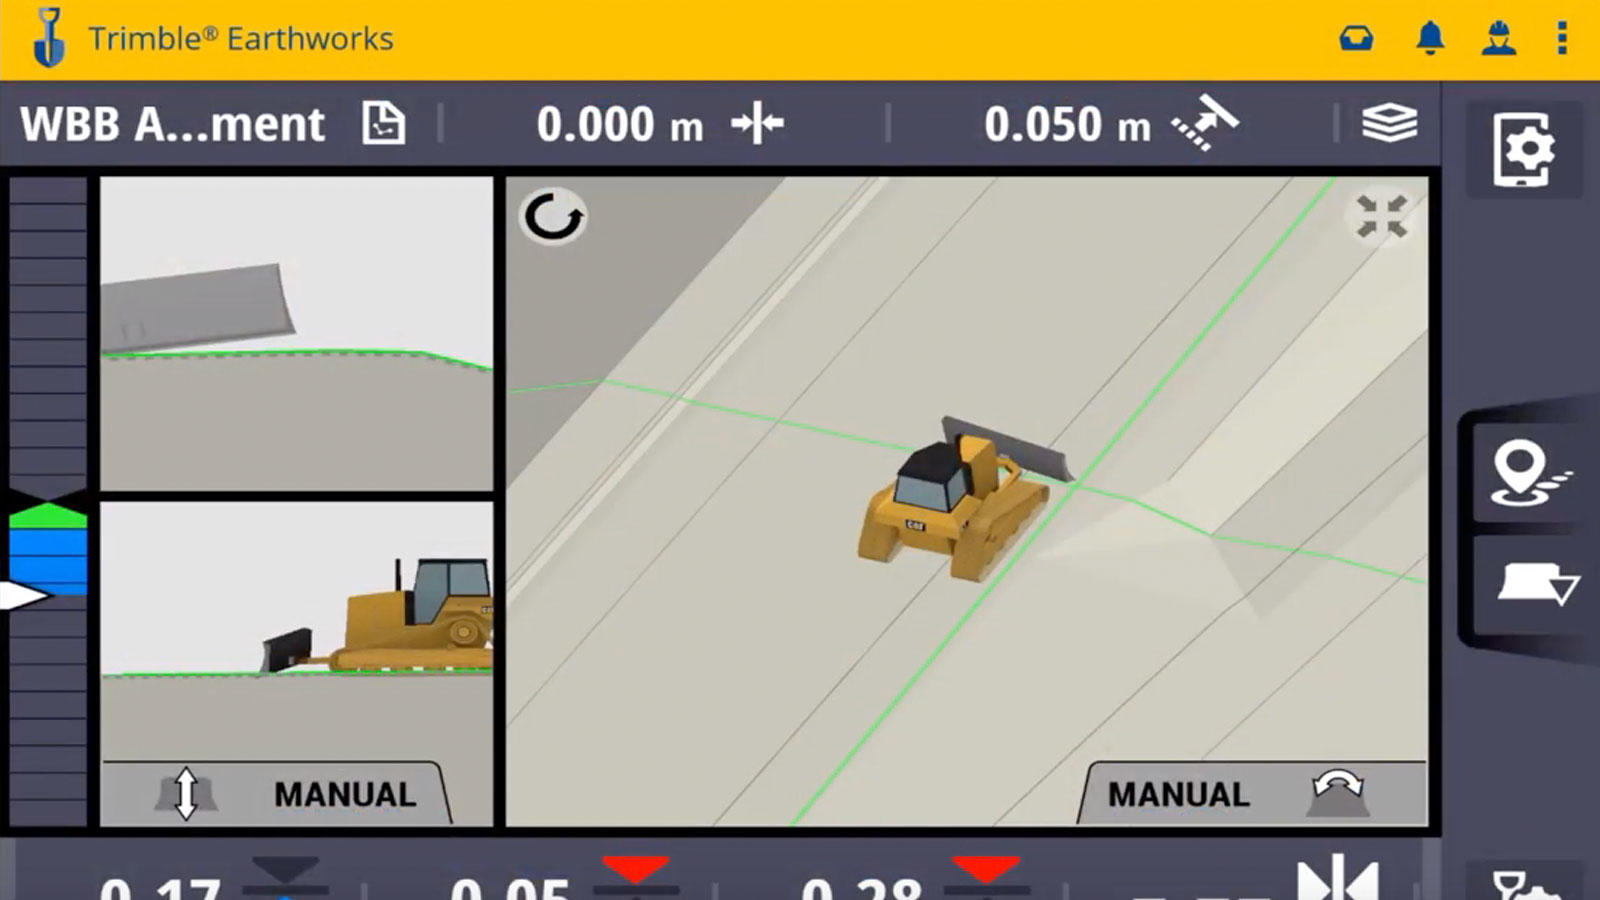 Trimble Earthworks Software for dozers